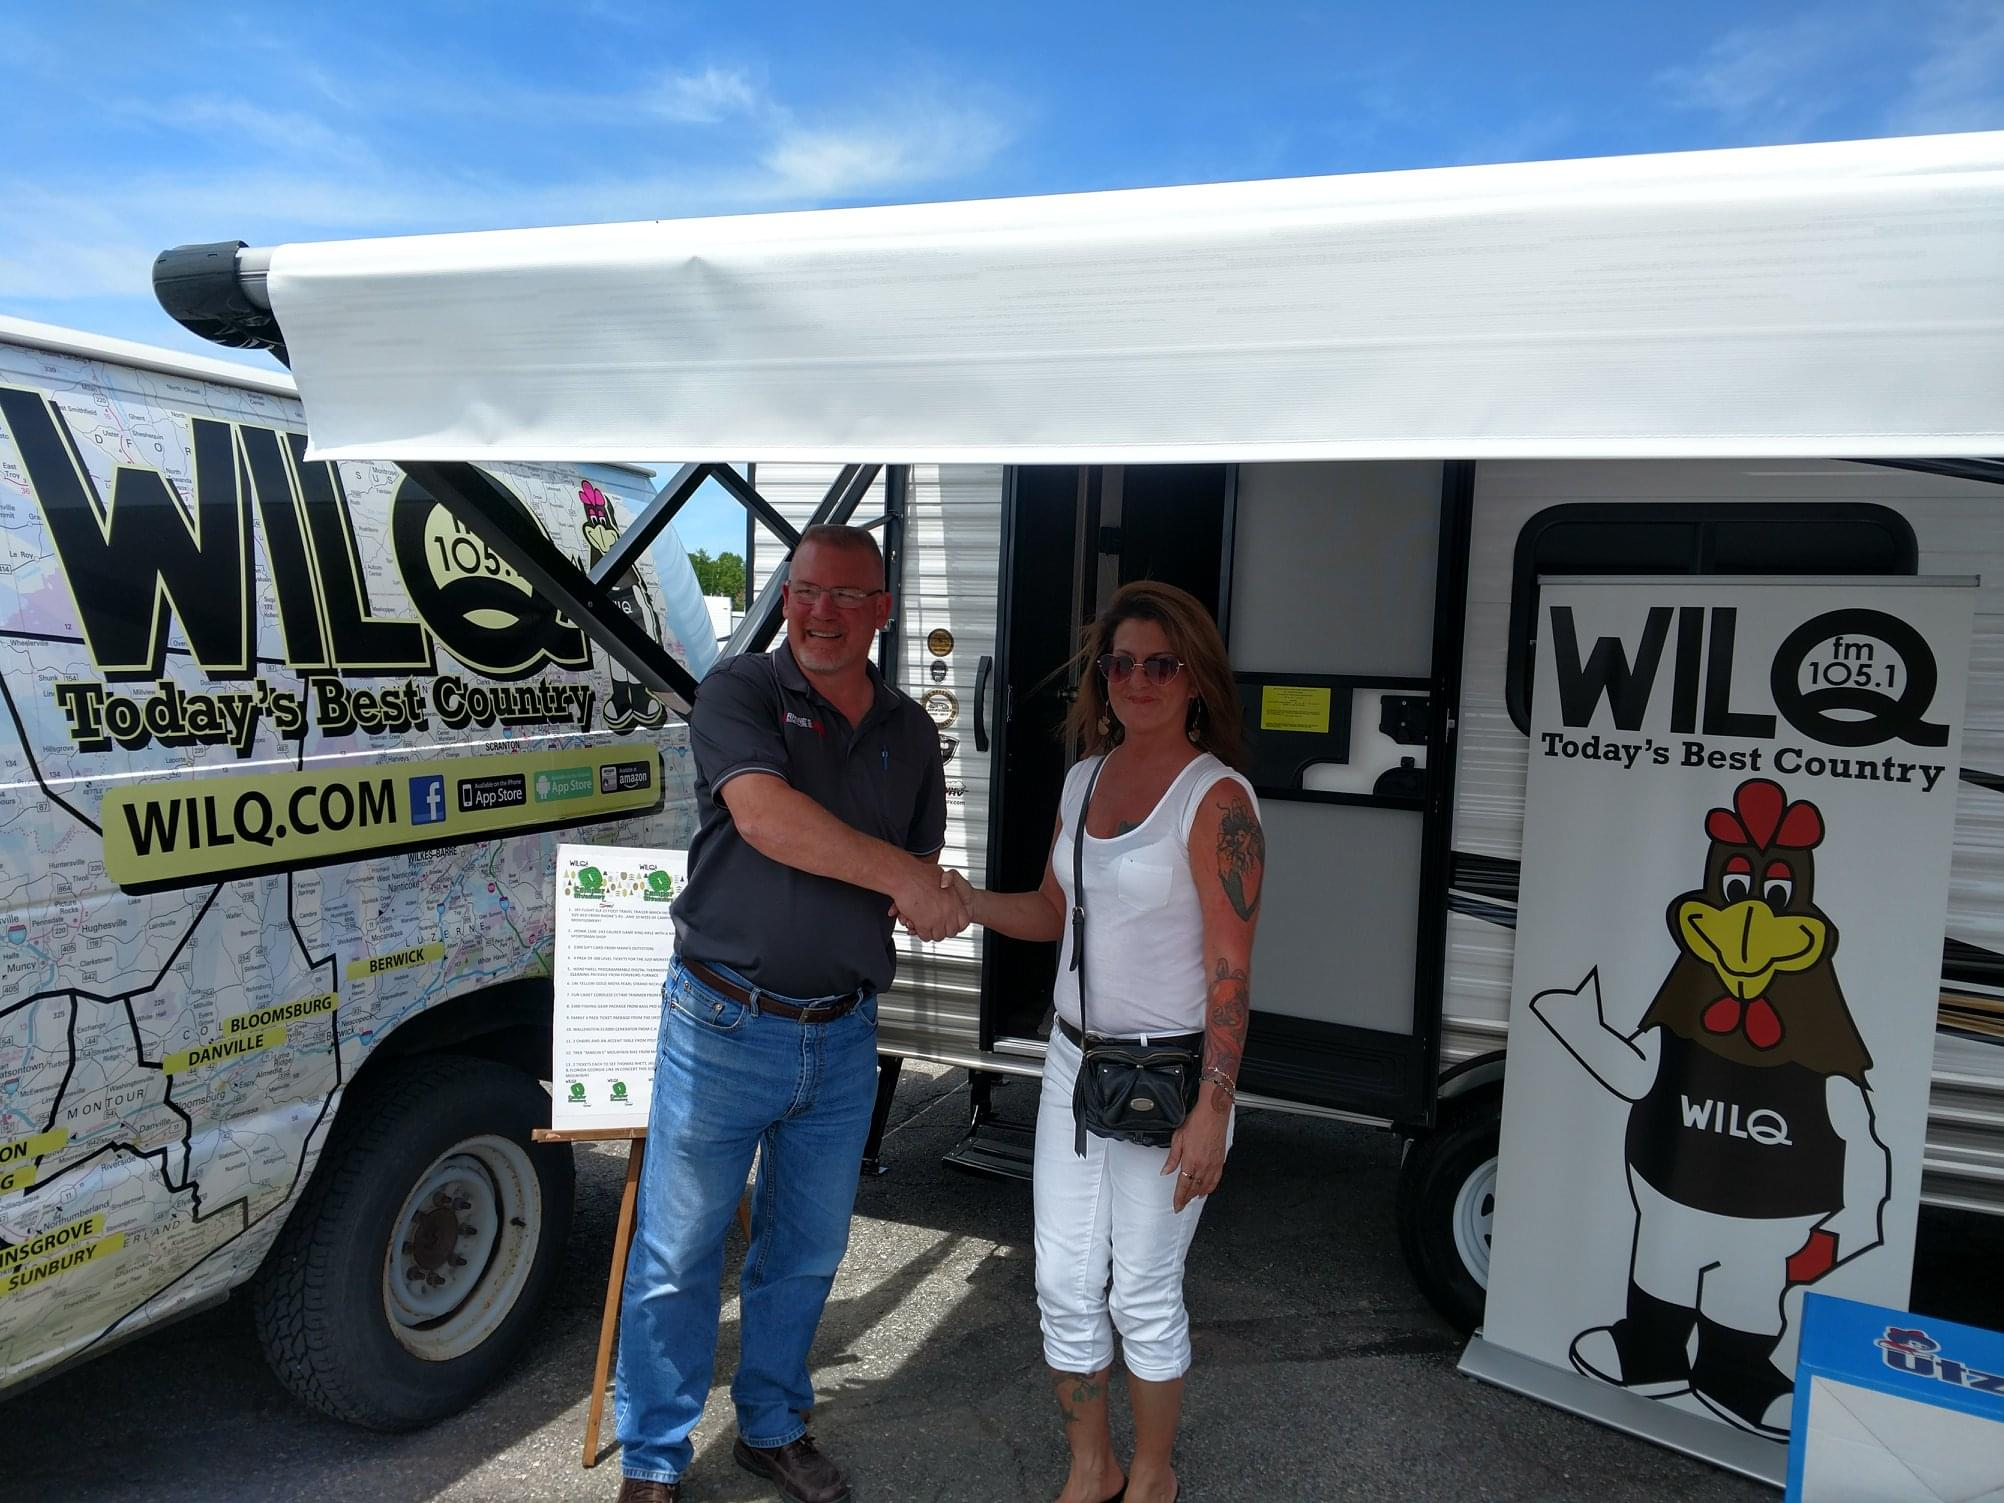 Q Camper with Rhone's RV | WILQ-FM